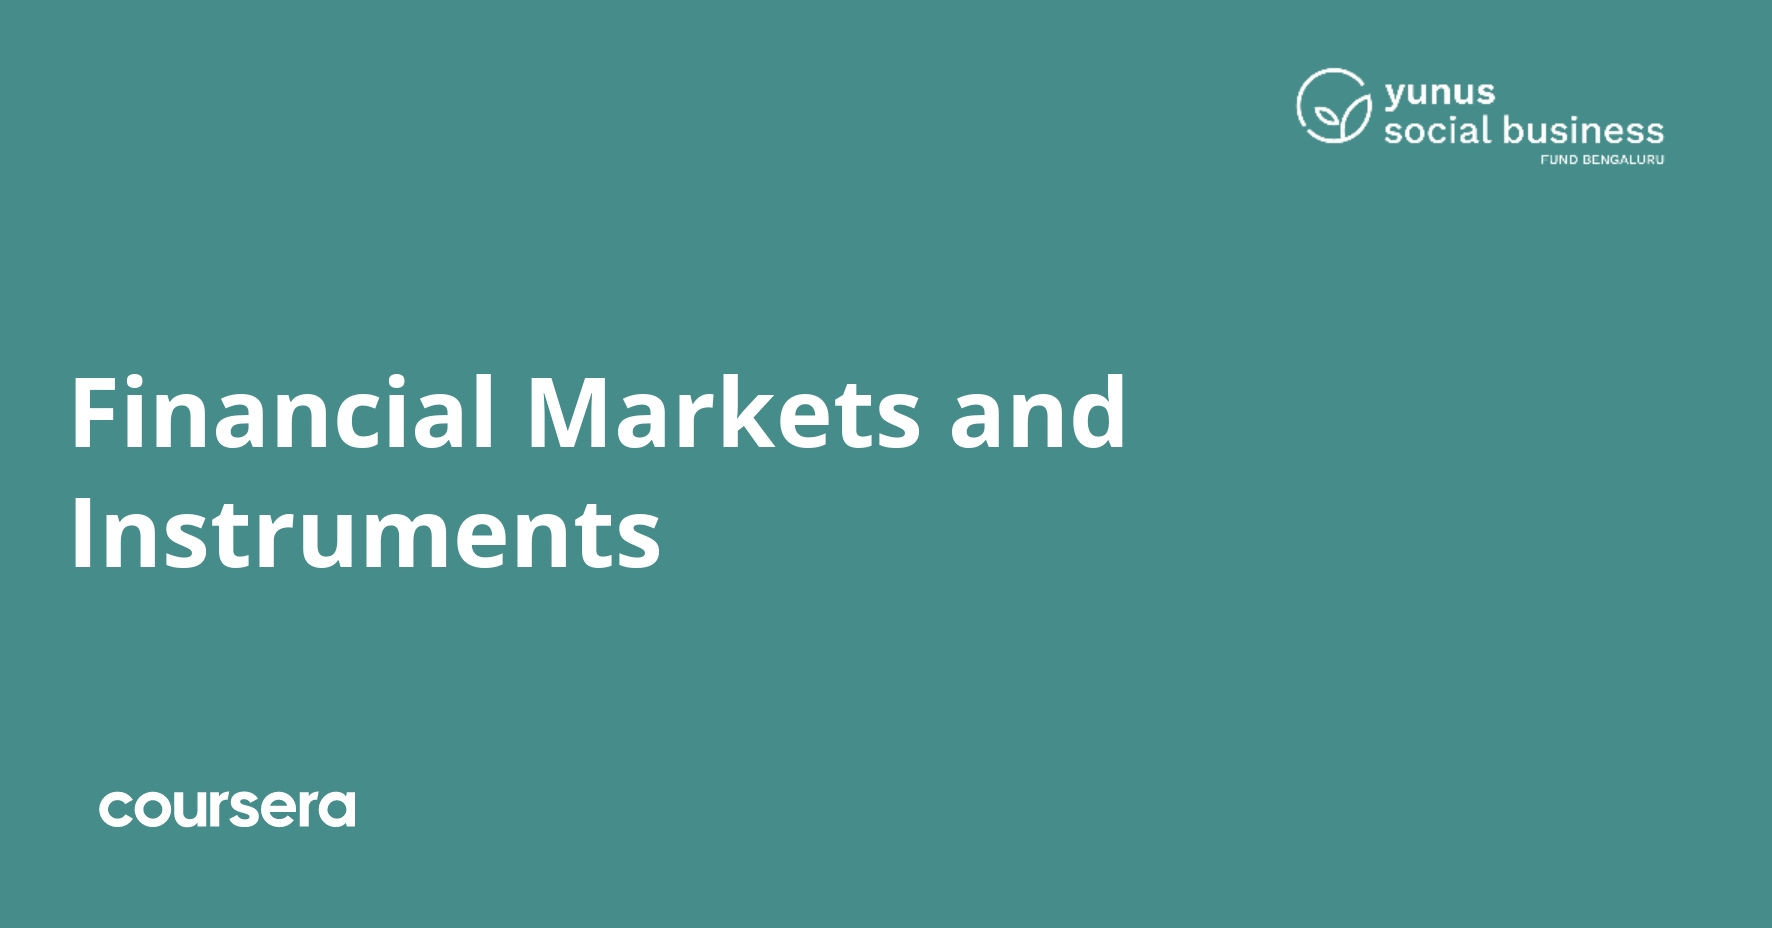 Financial Markets and Instruments Coursera